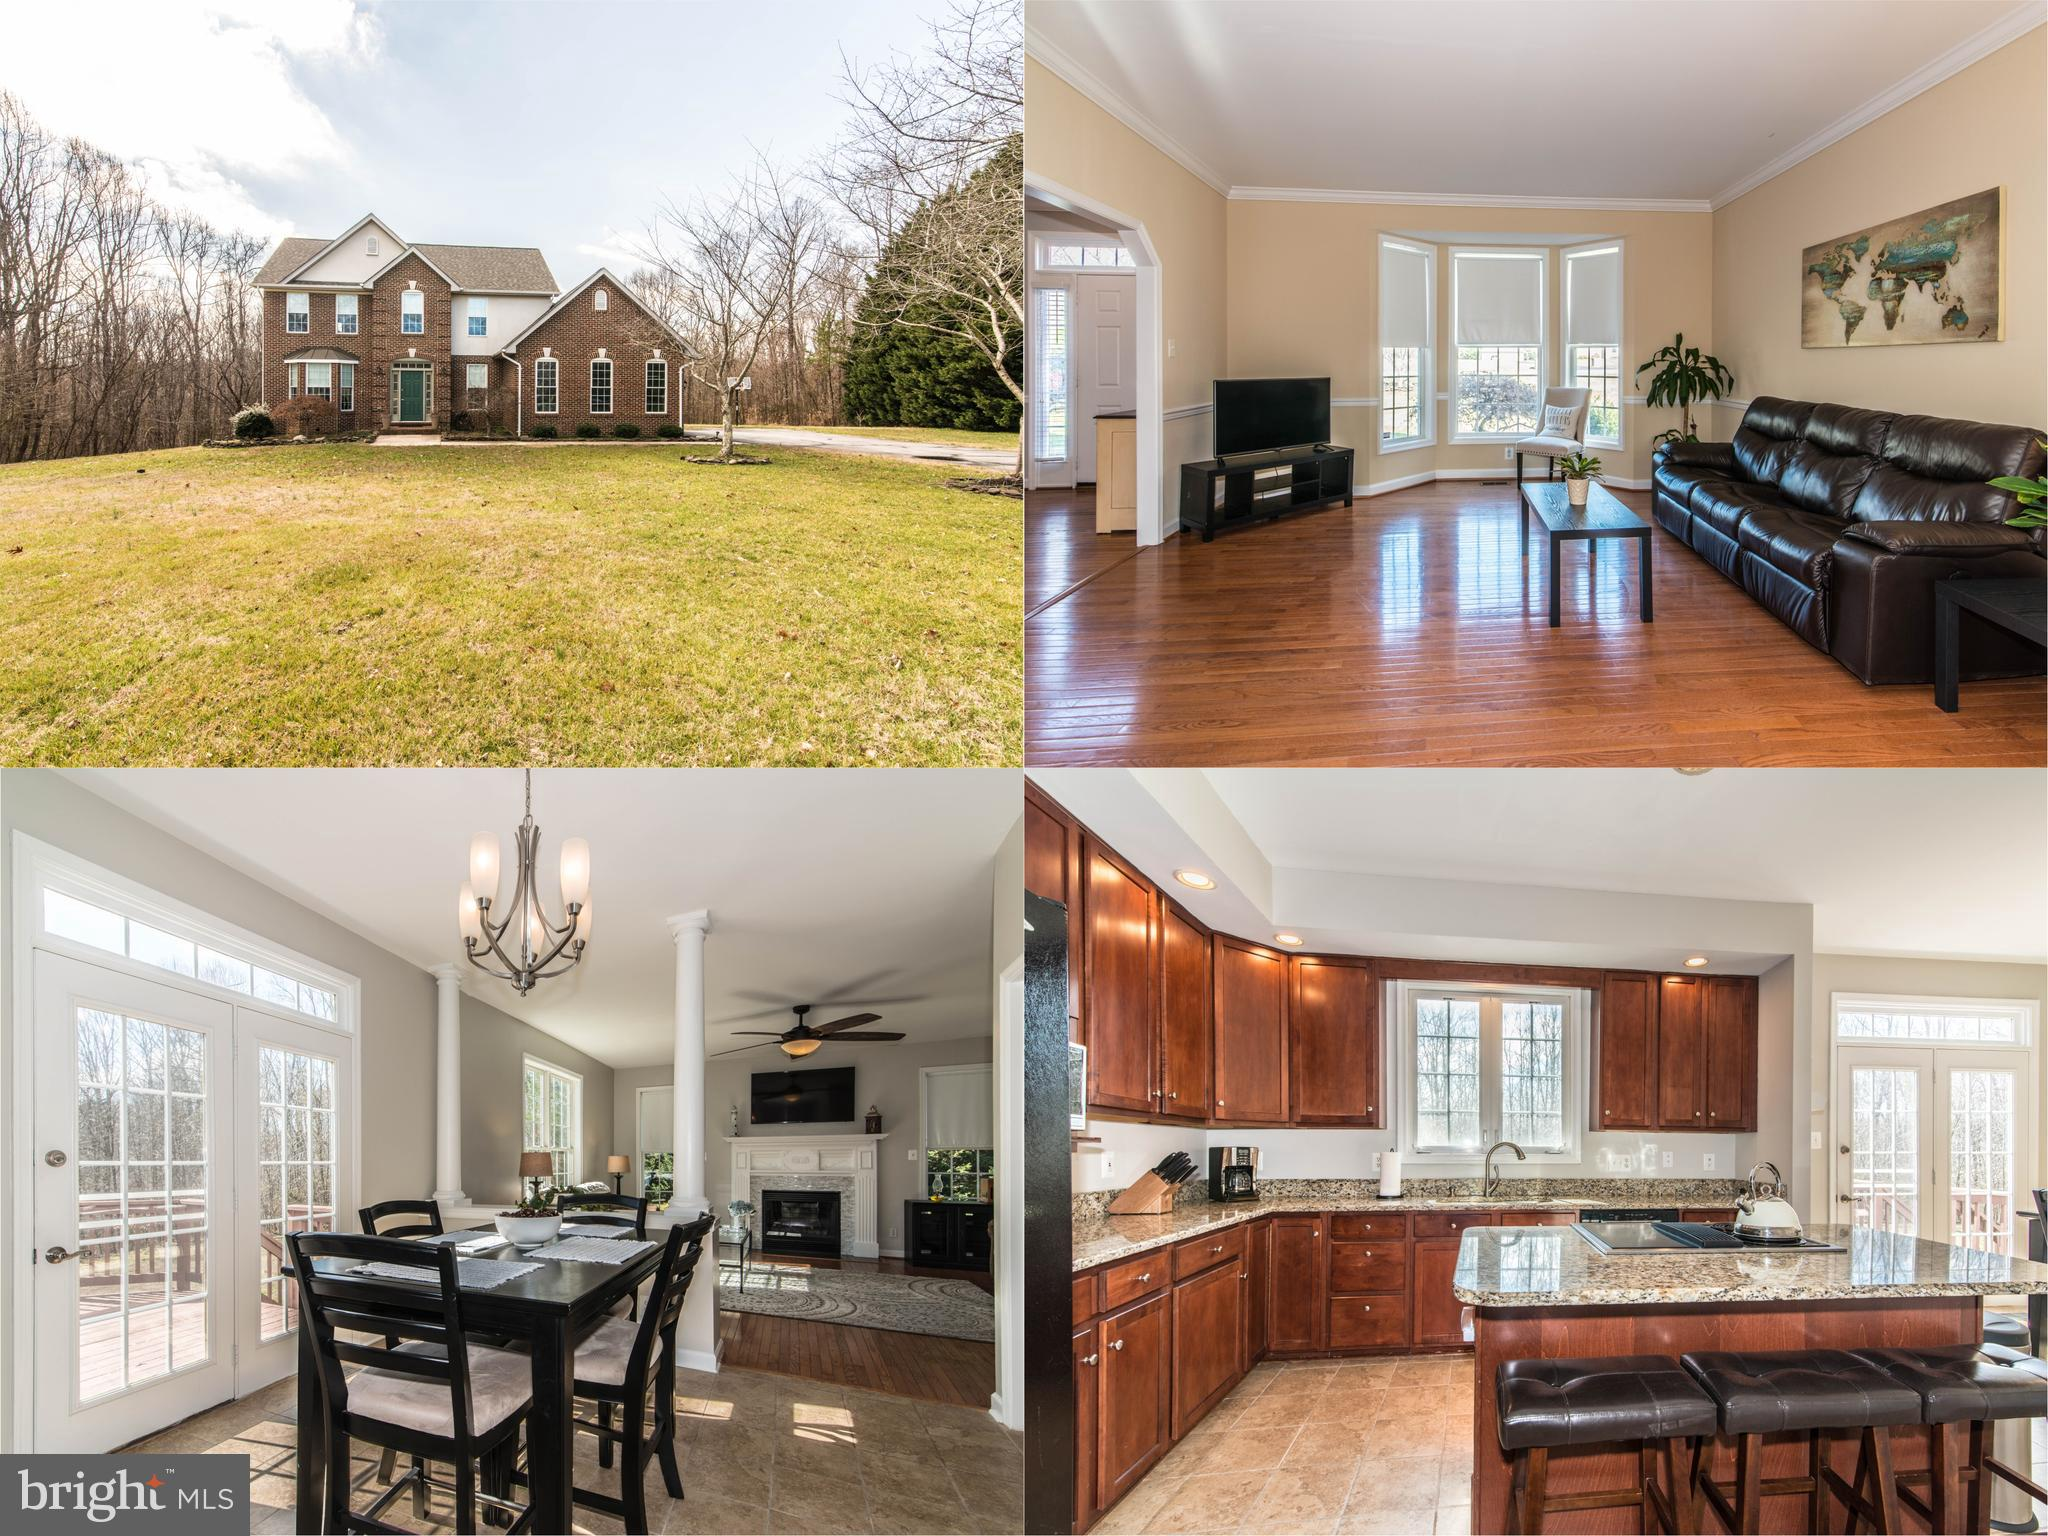 This gorgeous colonial nestled on a quiet cul-de-sac in sought after Bridgeleigh Farms is set on a b